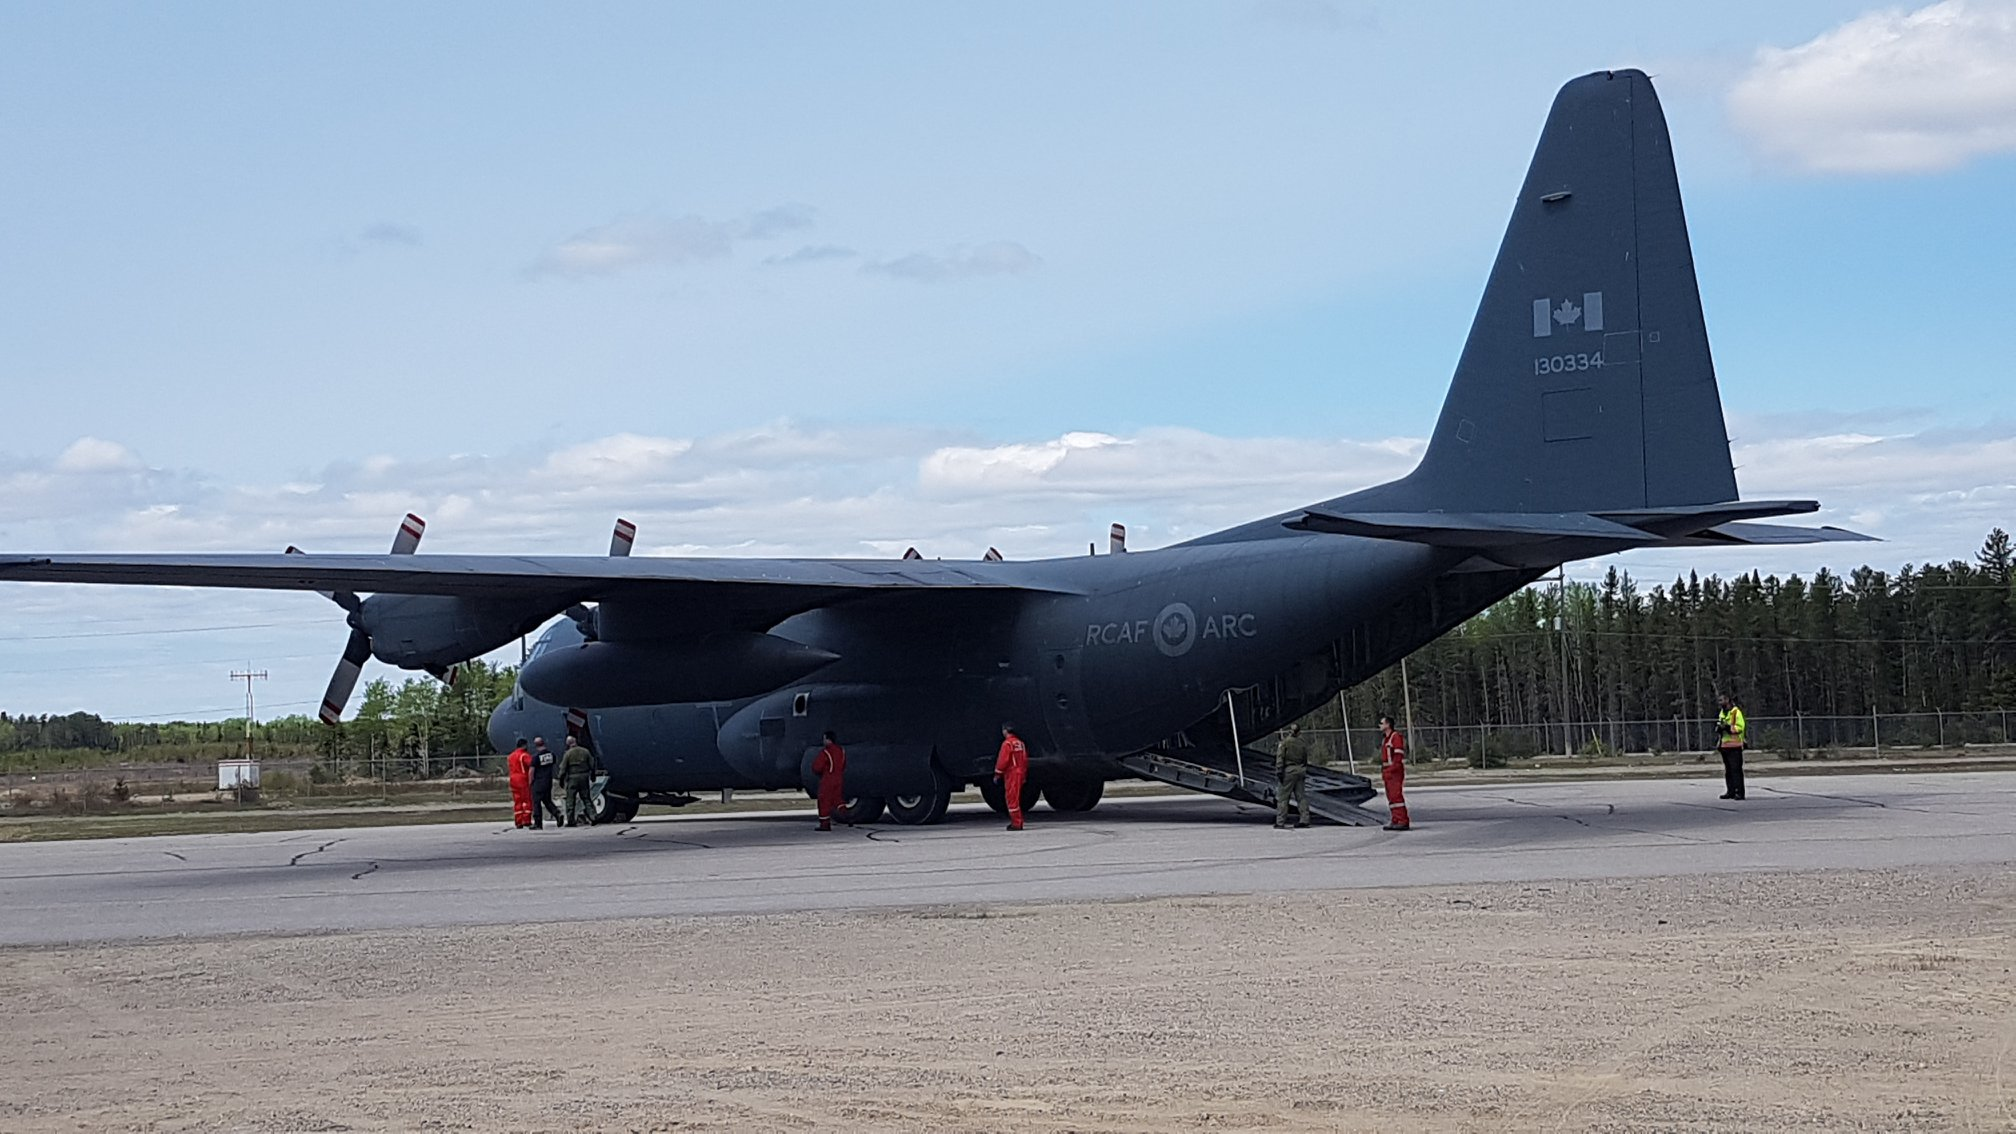 RCAF Hercules in Sioux Lookout - Image courtesy of North Star Air